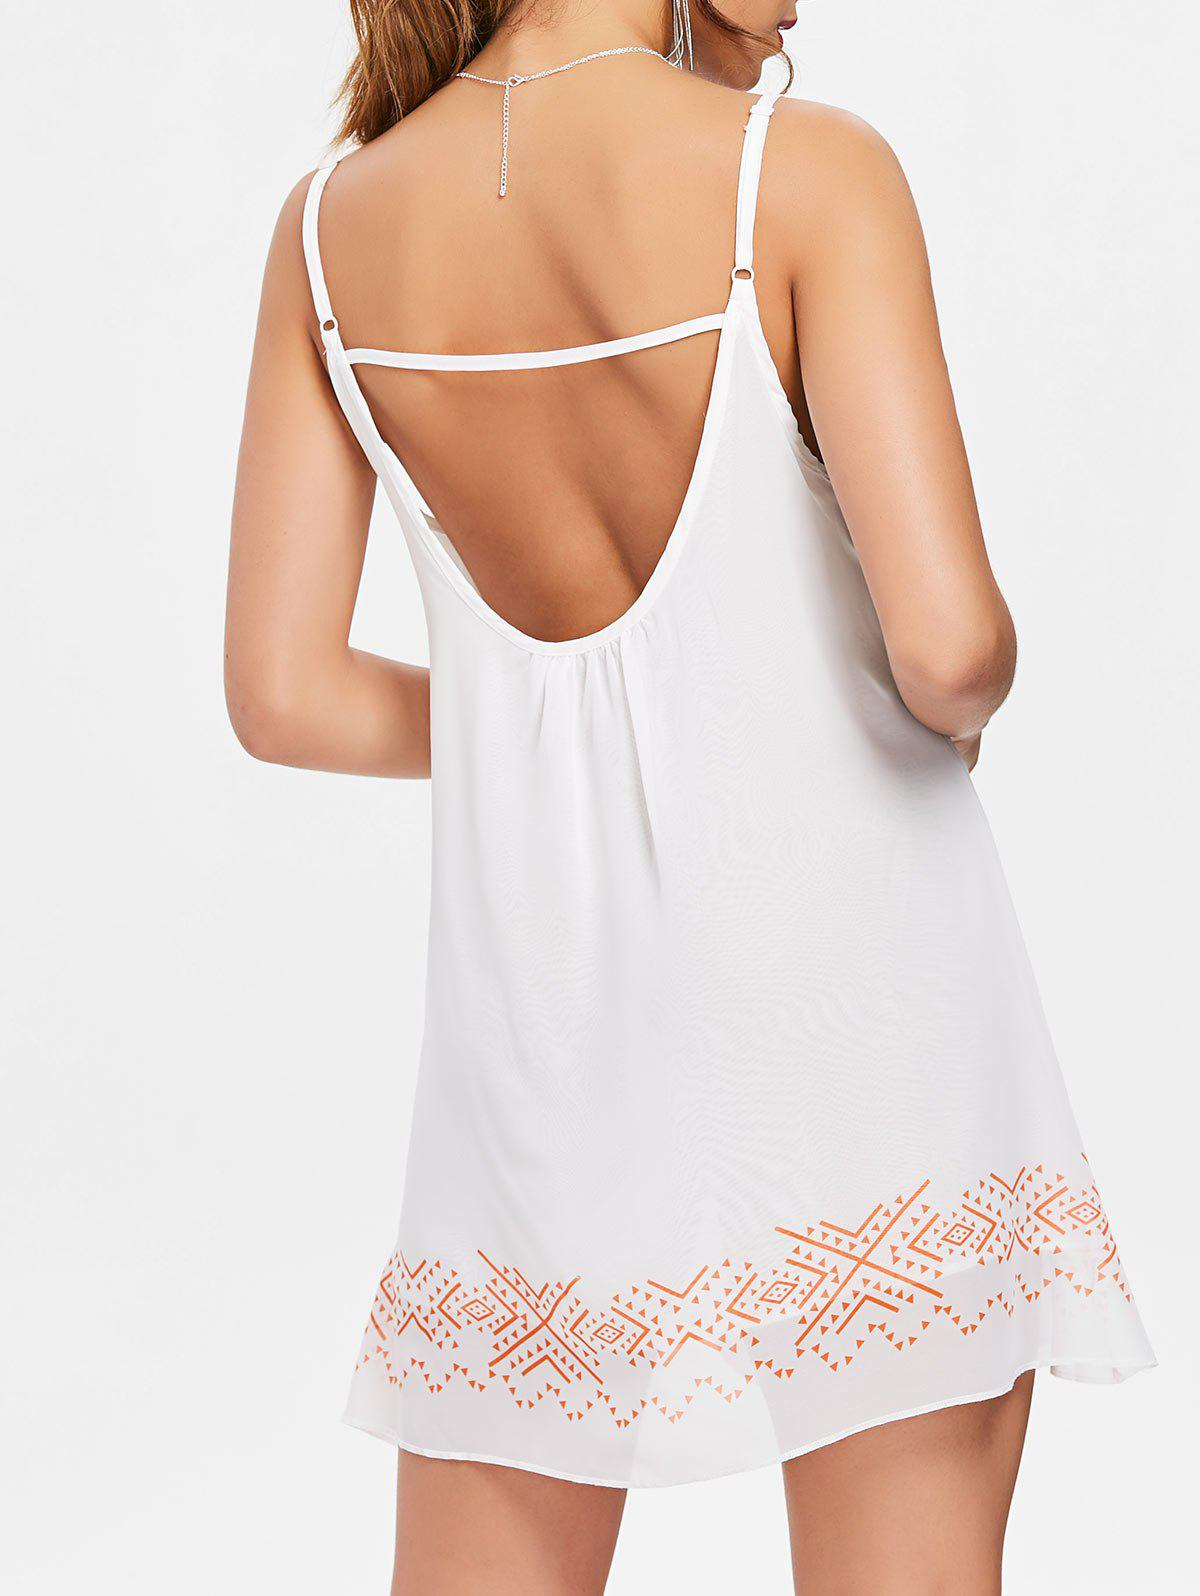 Unique Casual Backless Mini Slip Summer Sleeveless Babydoll Dress